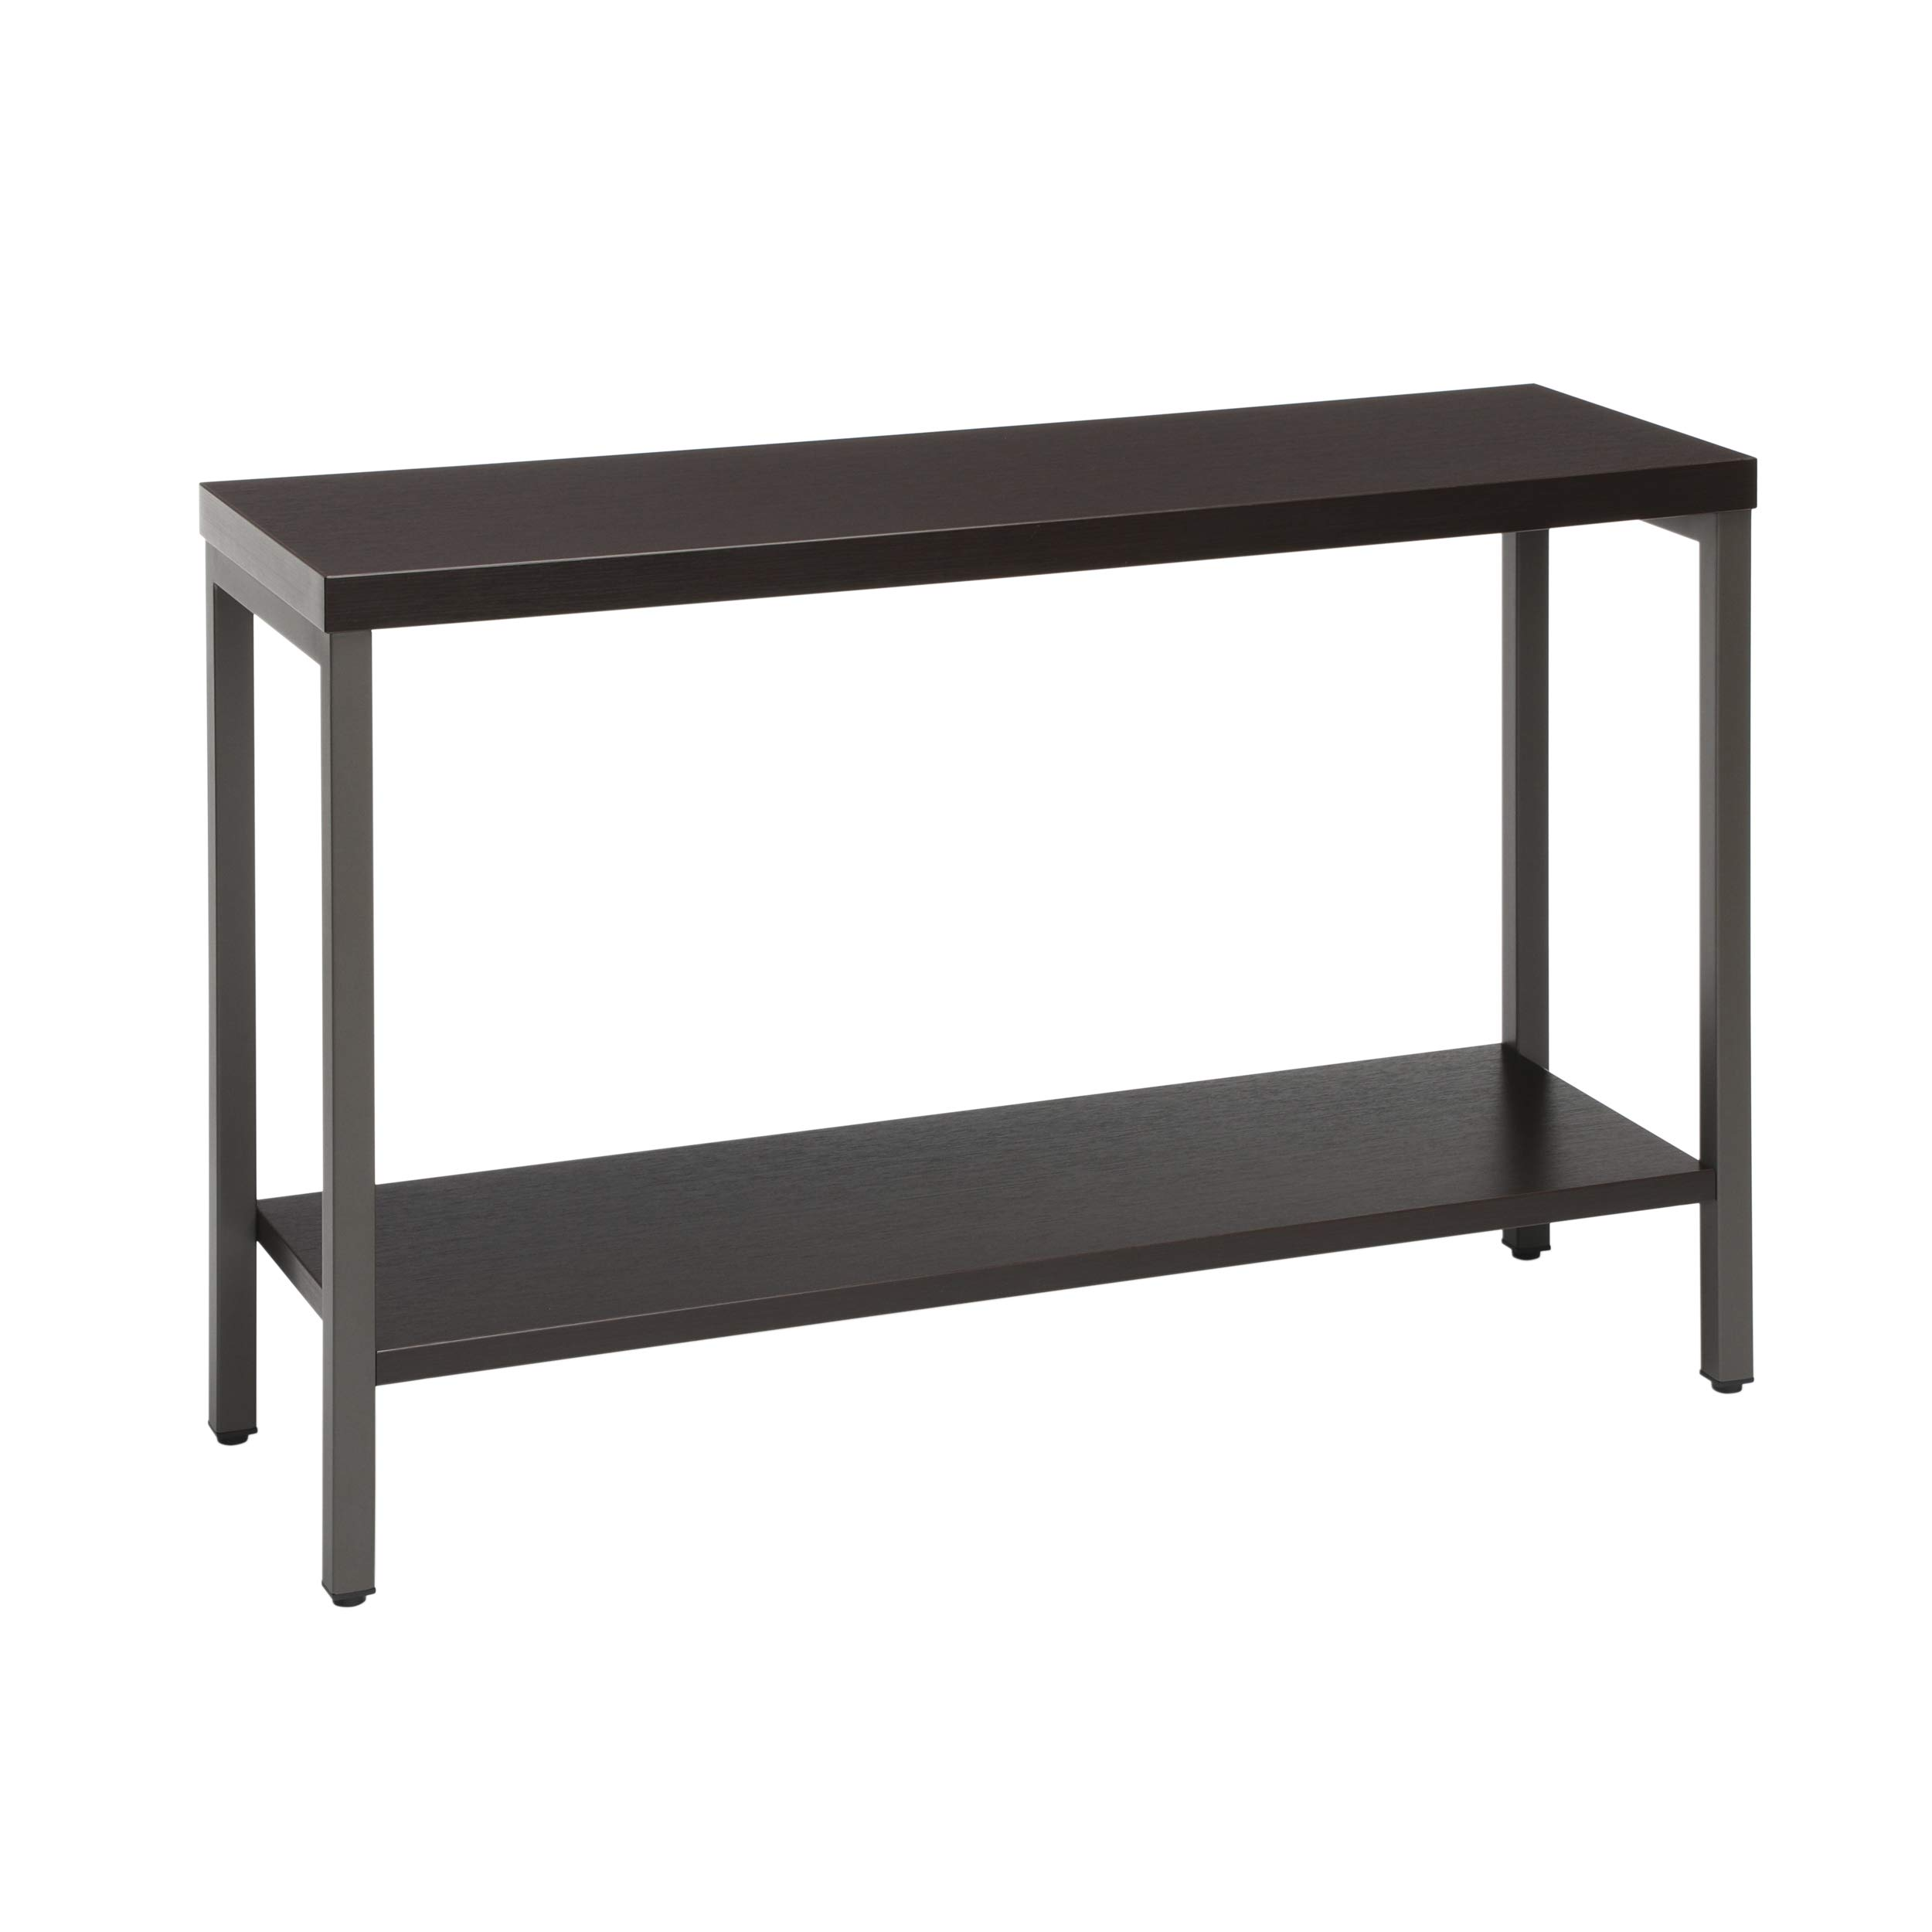 OFM Core Collection 44'' Modern Console Table with Shelf, Espresso by OFM